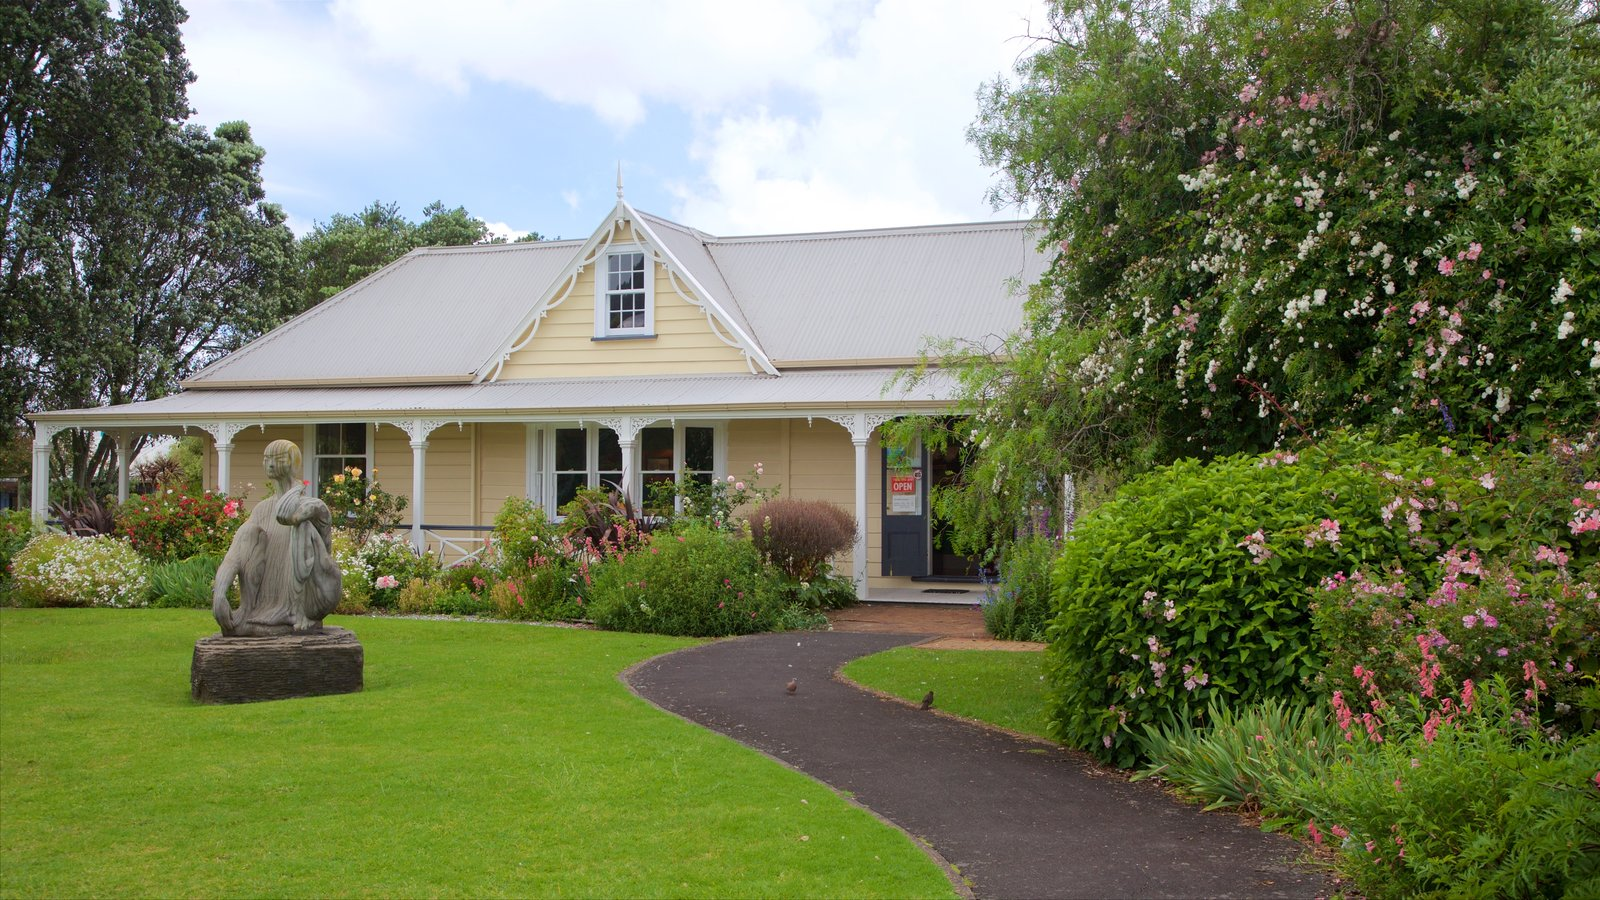 Whangarei which includes a garden, a house and heritage architecture